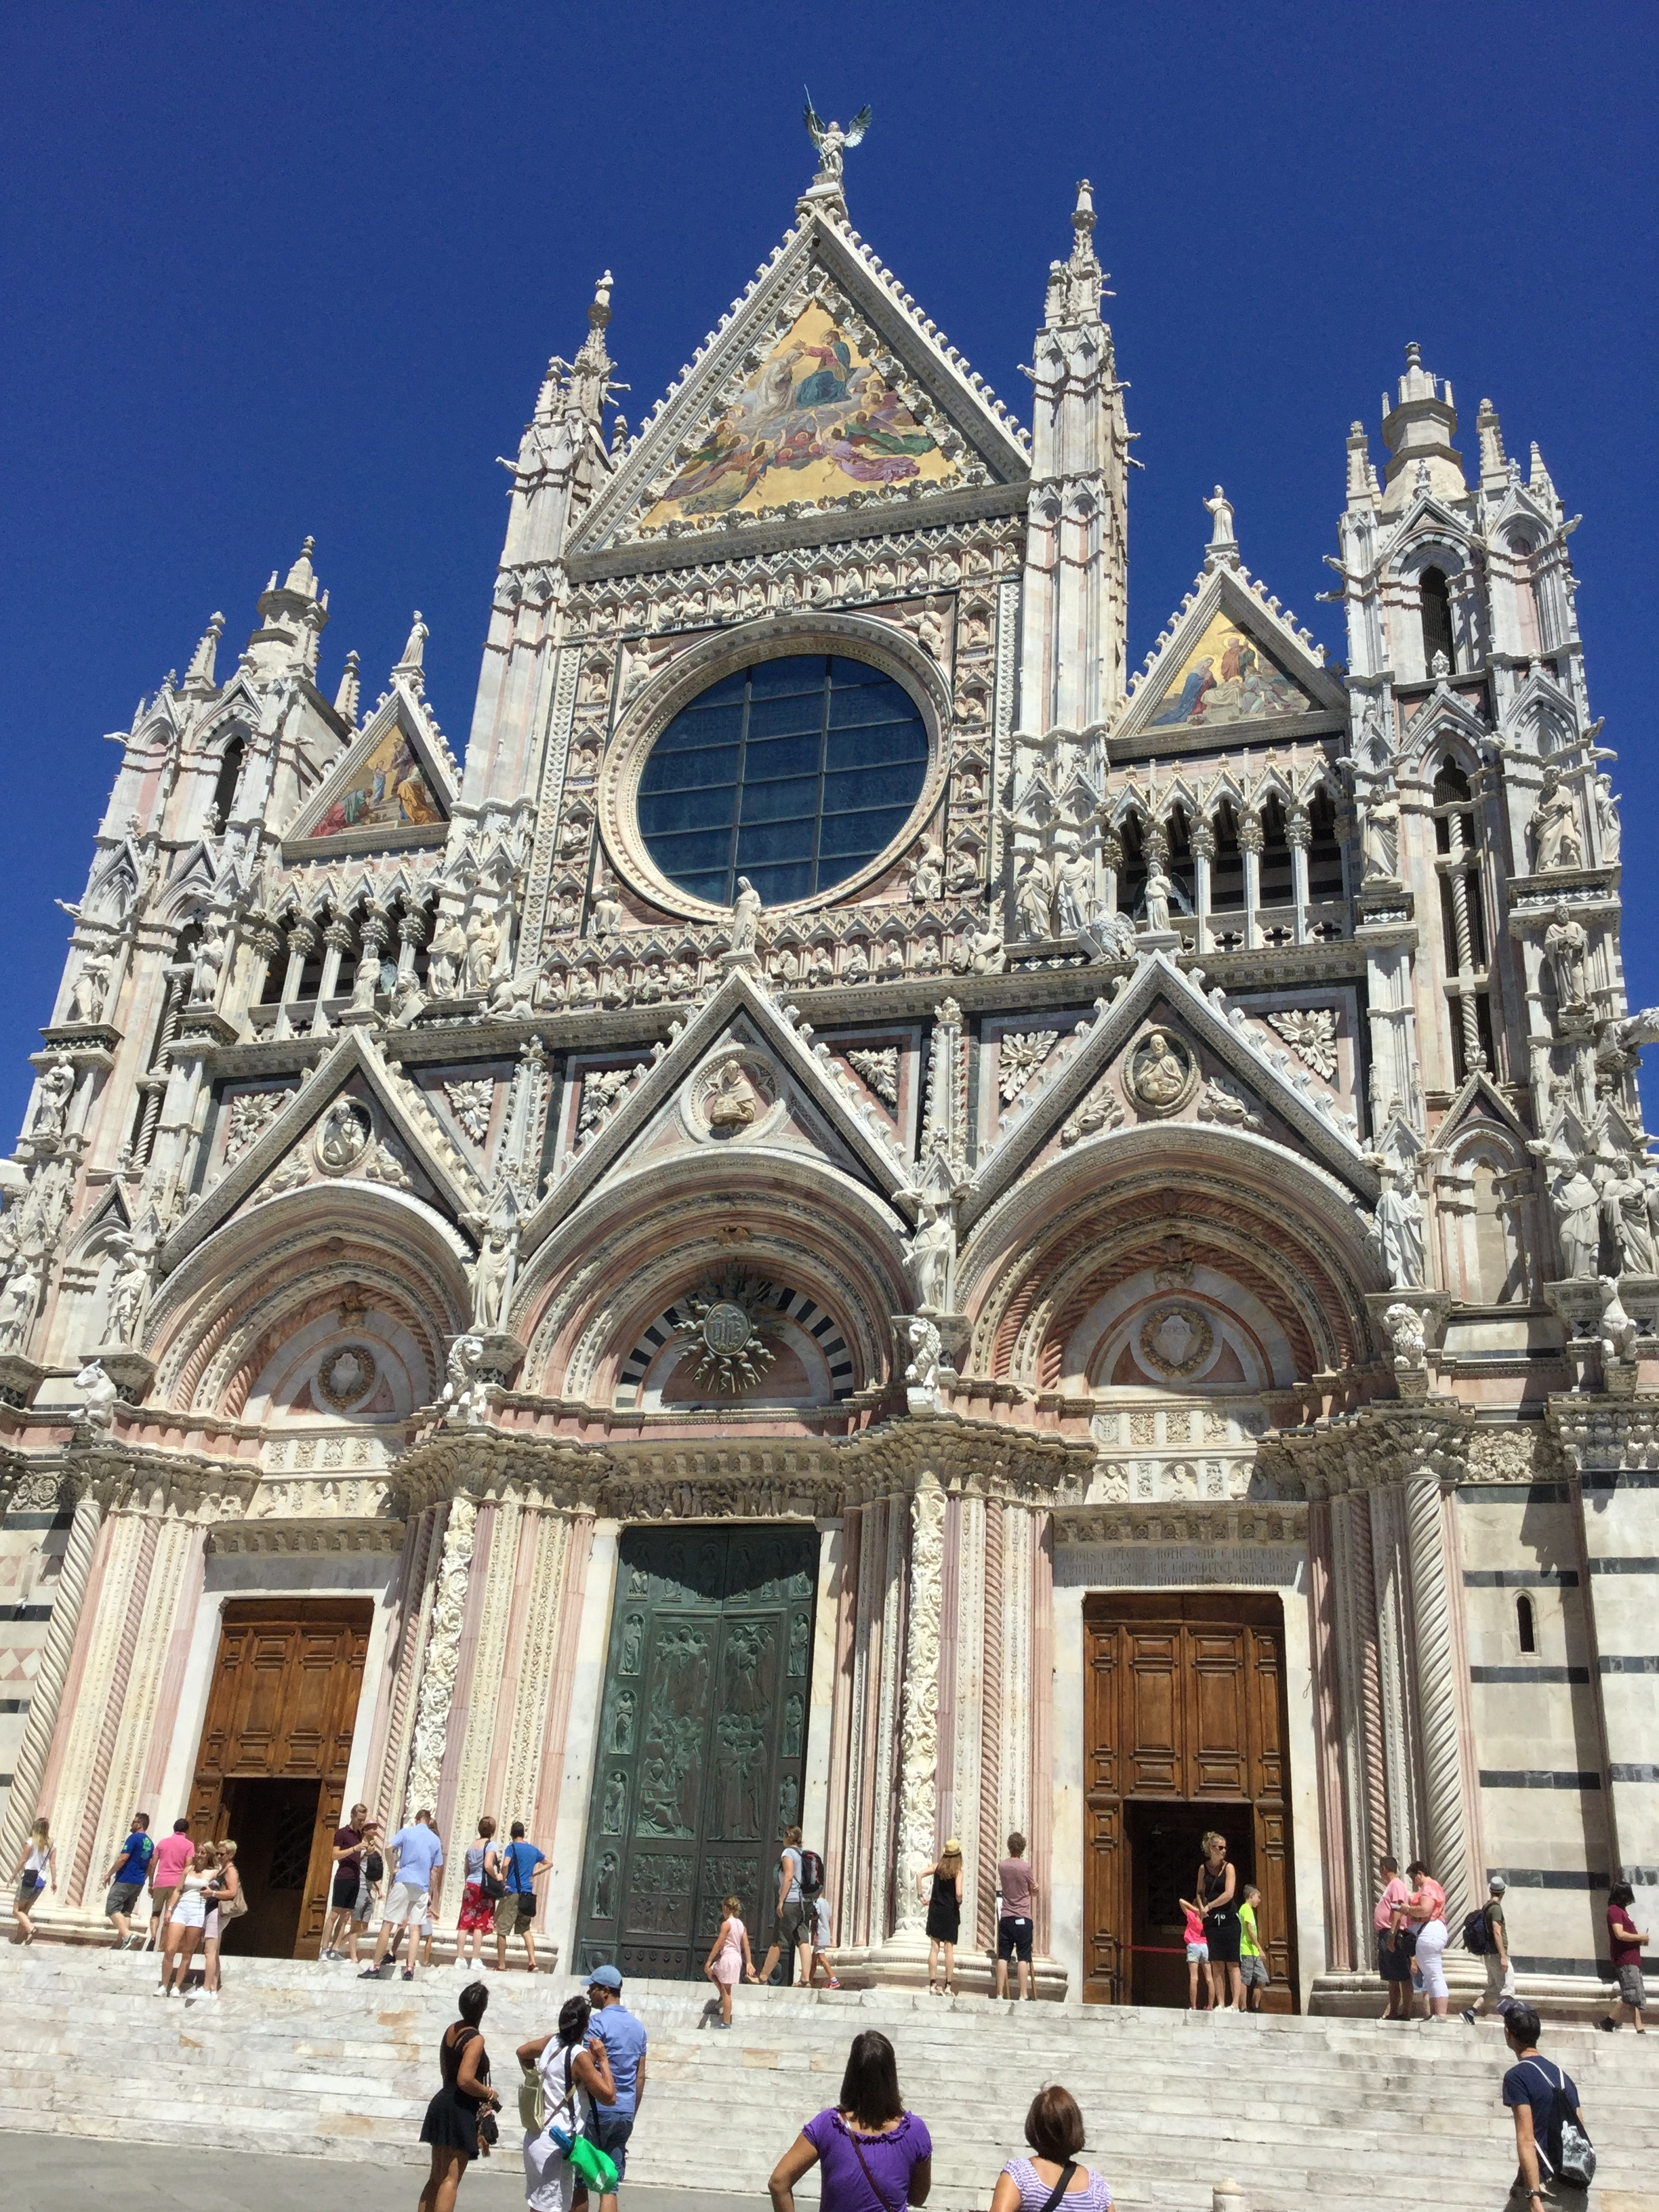 Siena also has a beautiful, huge and unfinished cathedral.